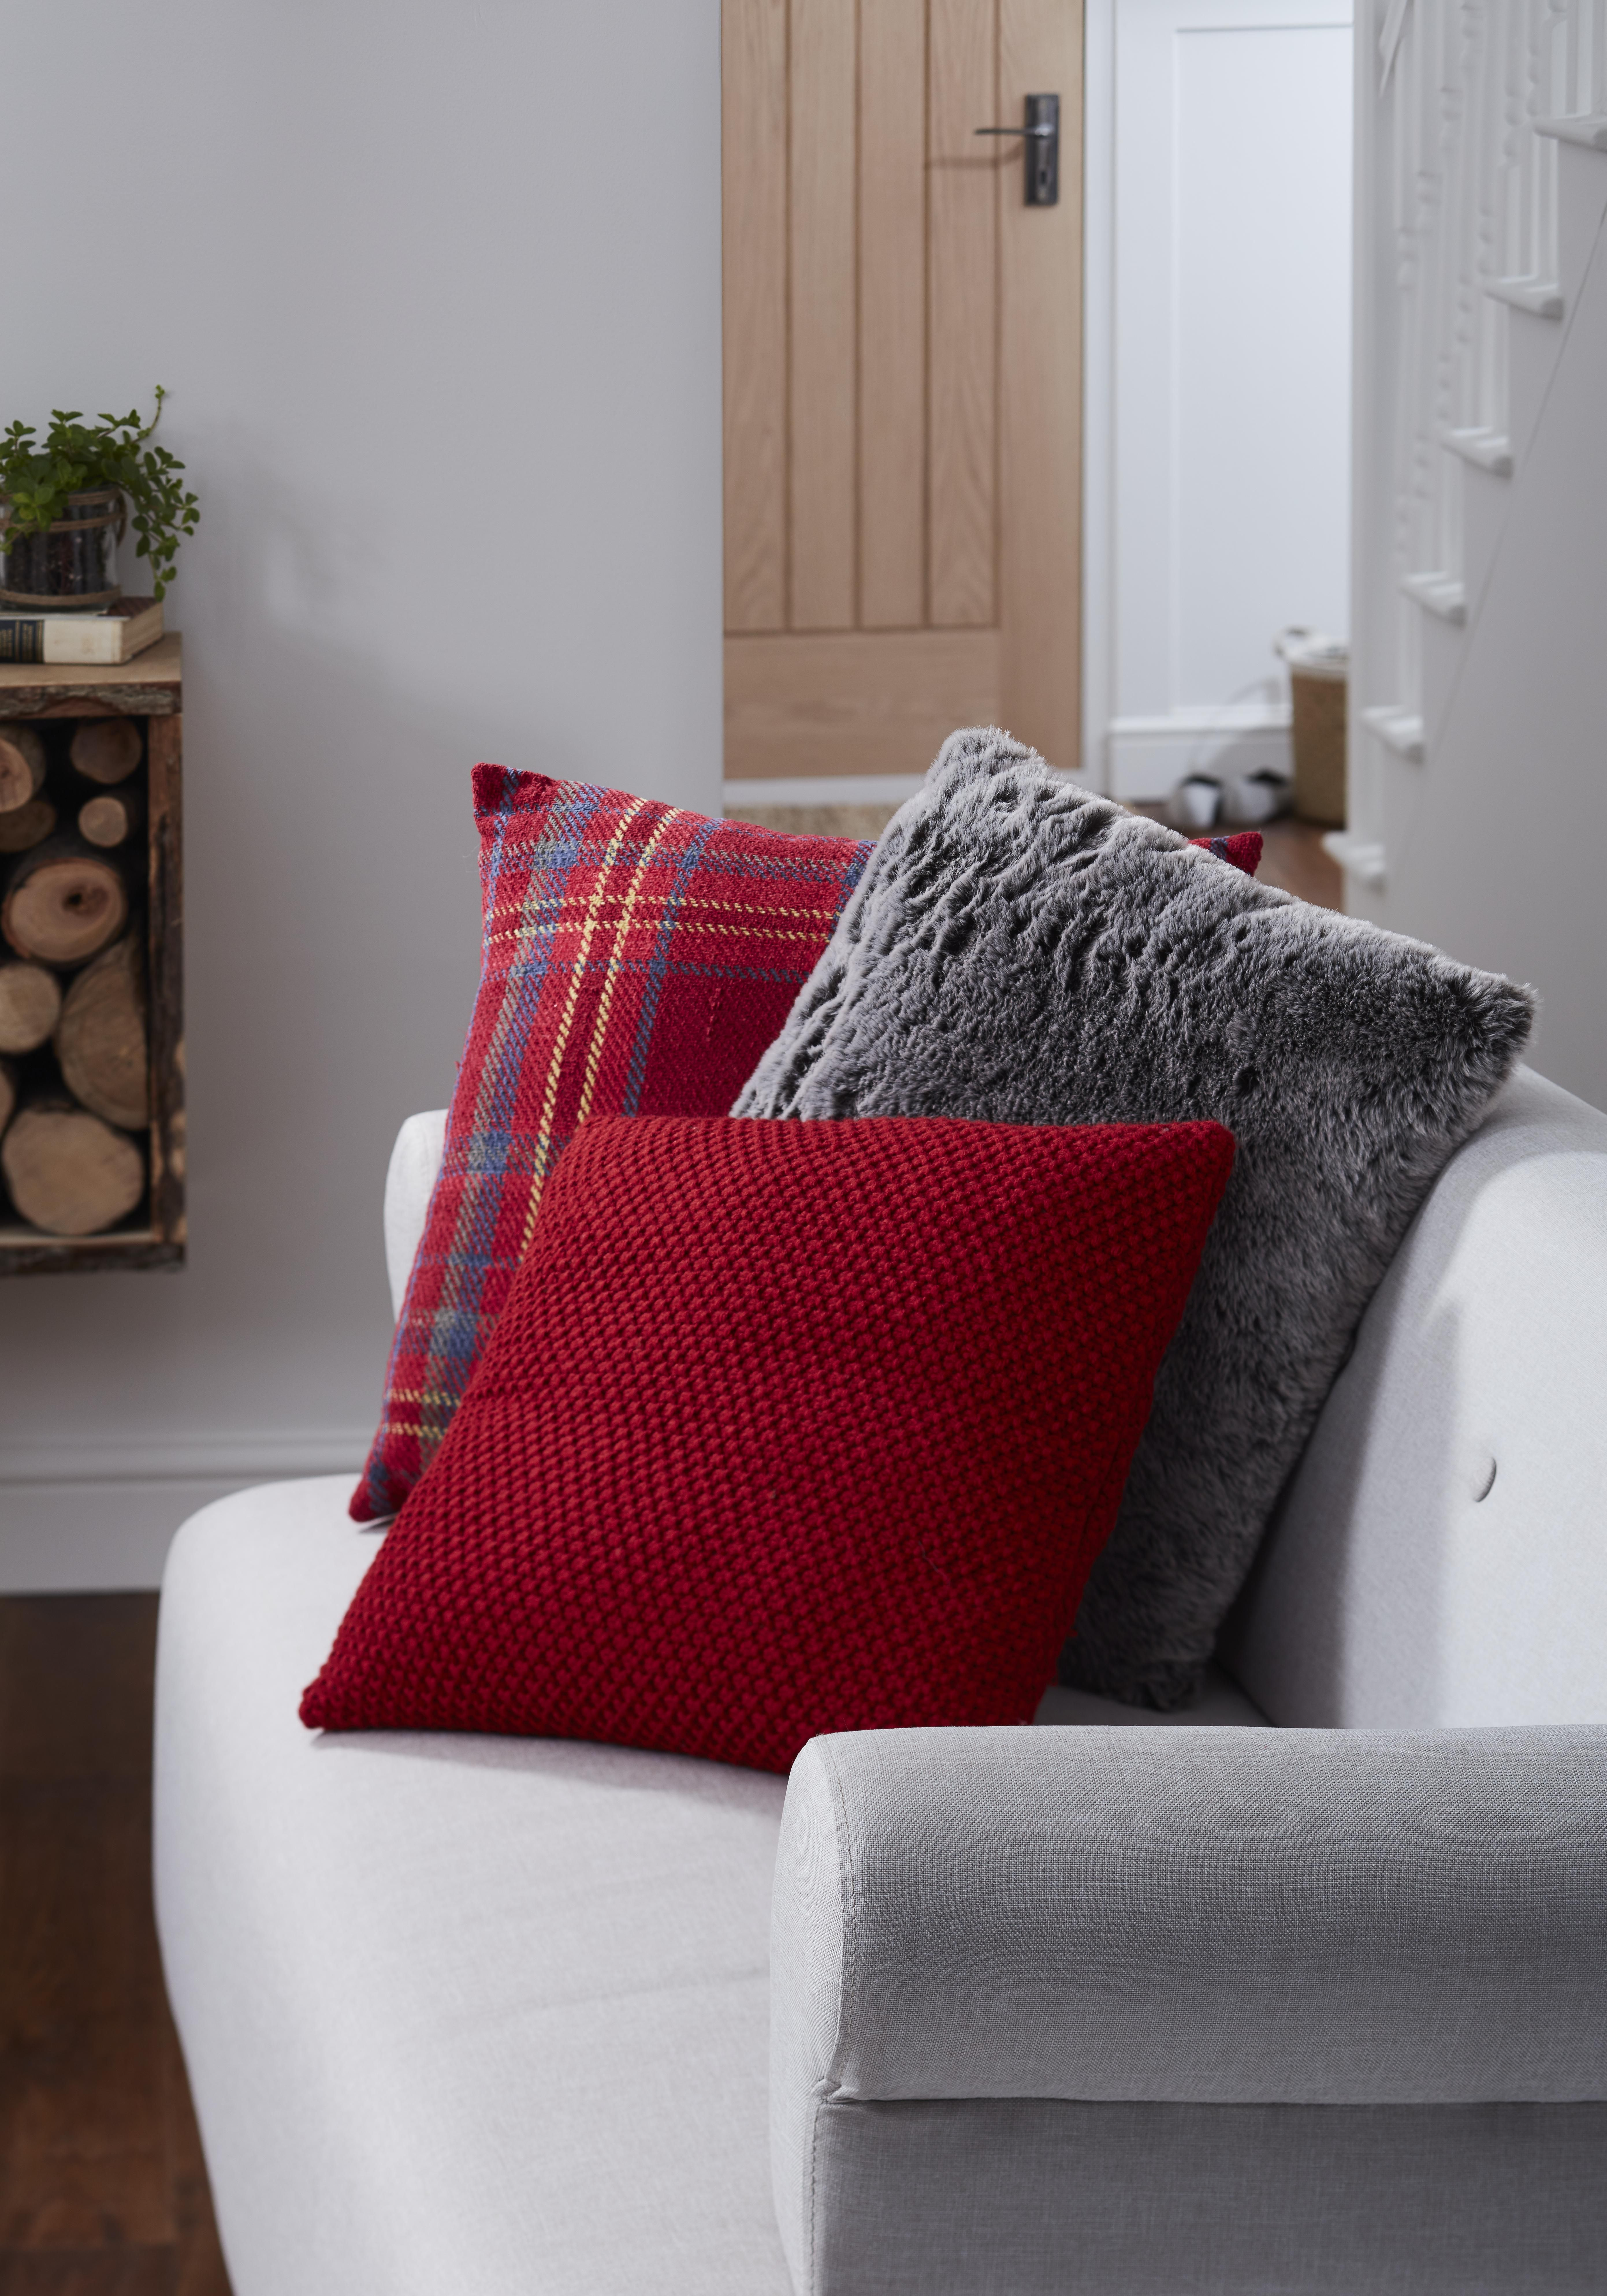 Maxine tartan red cushion cosy hygge and fur pillow